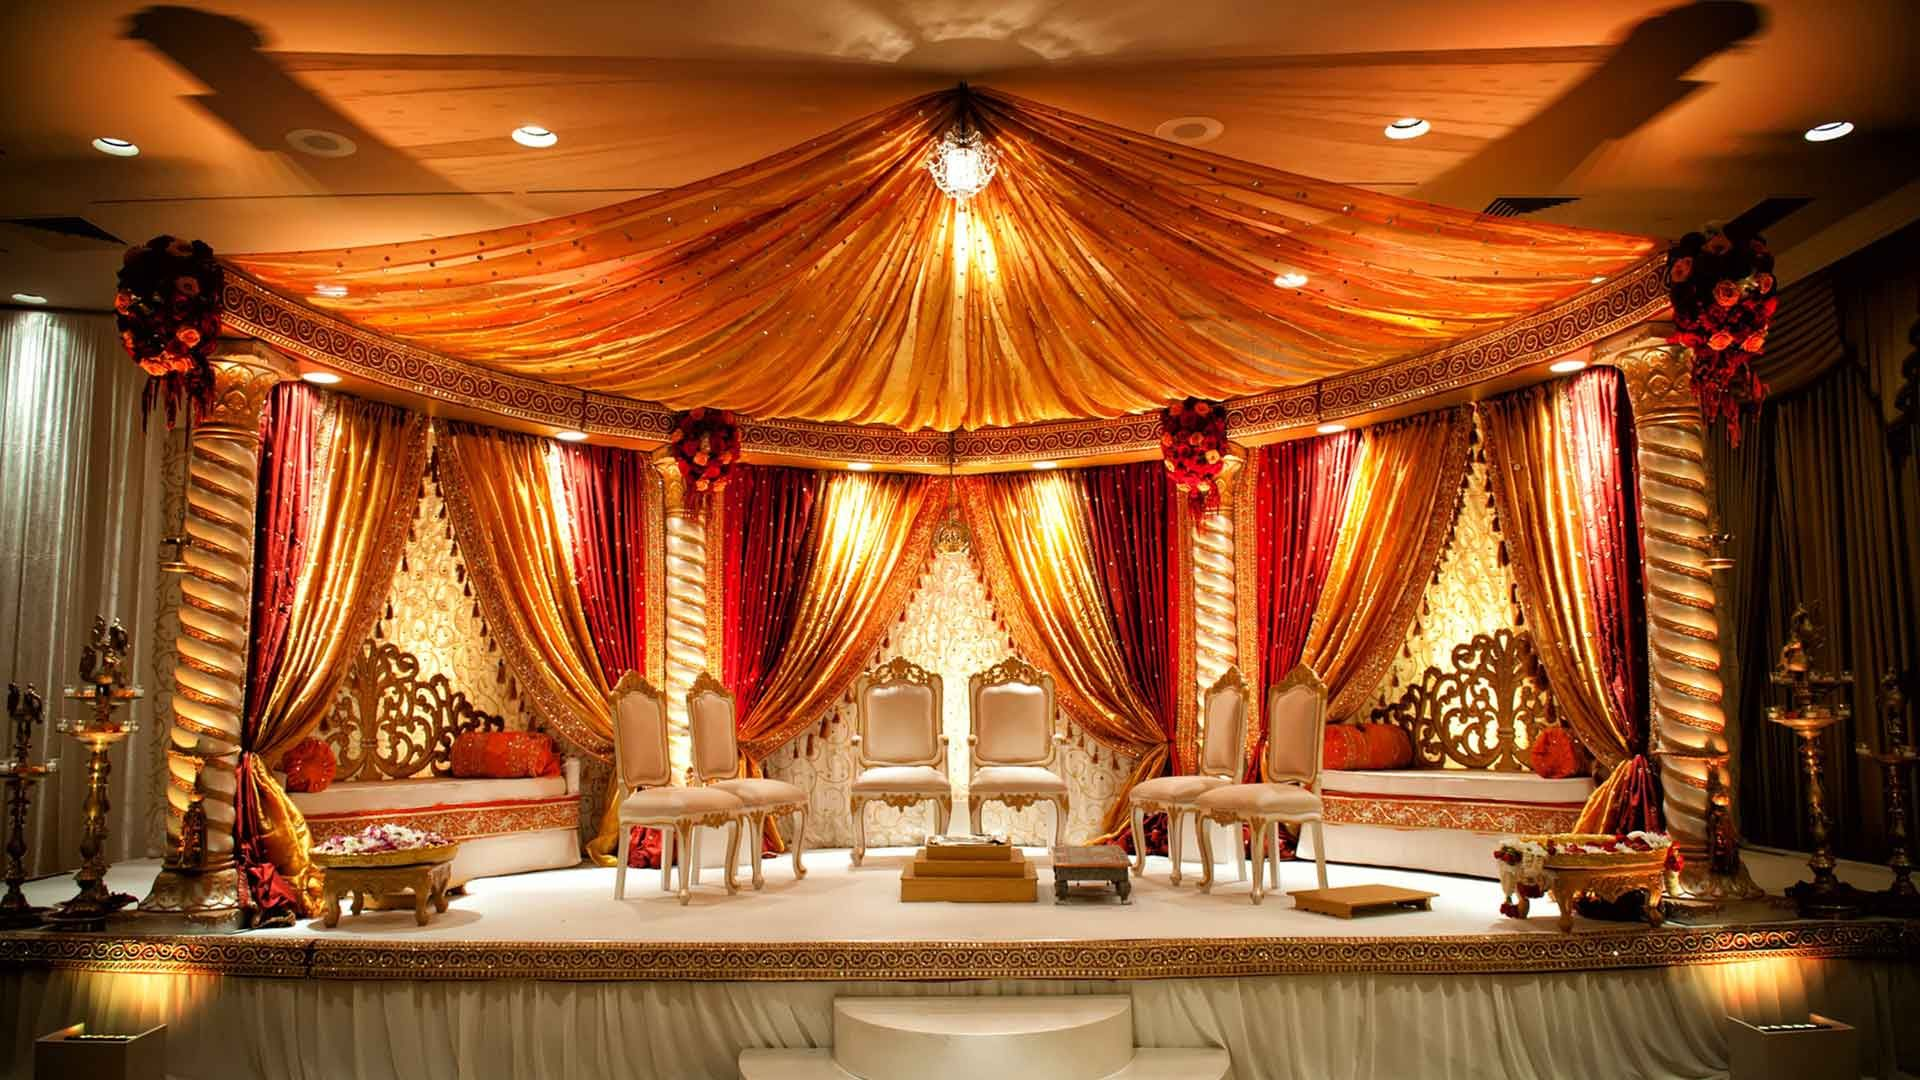 Alluring indian wedding decorations 2016 environment india alluring indian wedding decorations 2016 junglespirit Choice Image